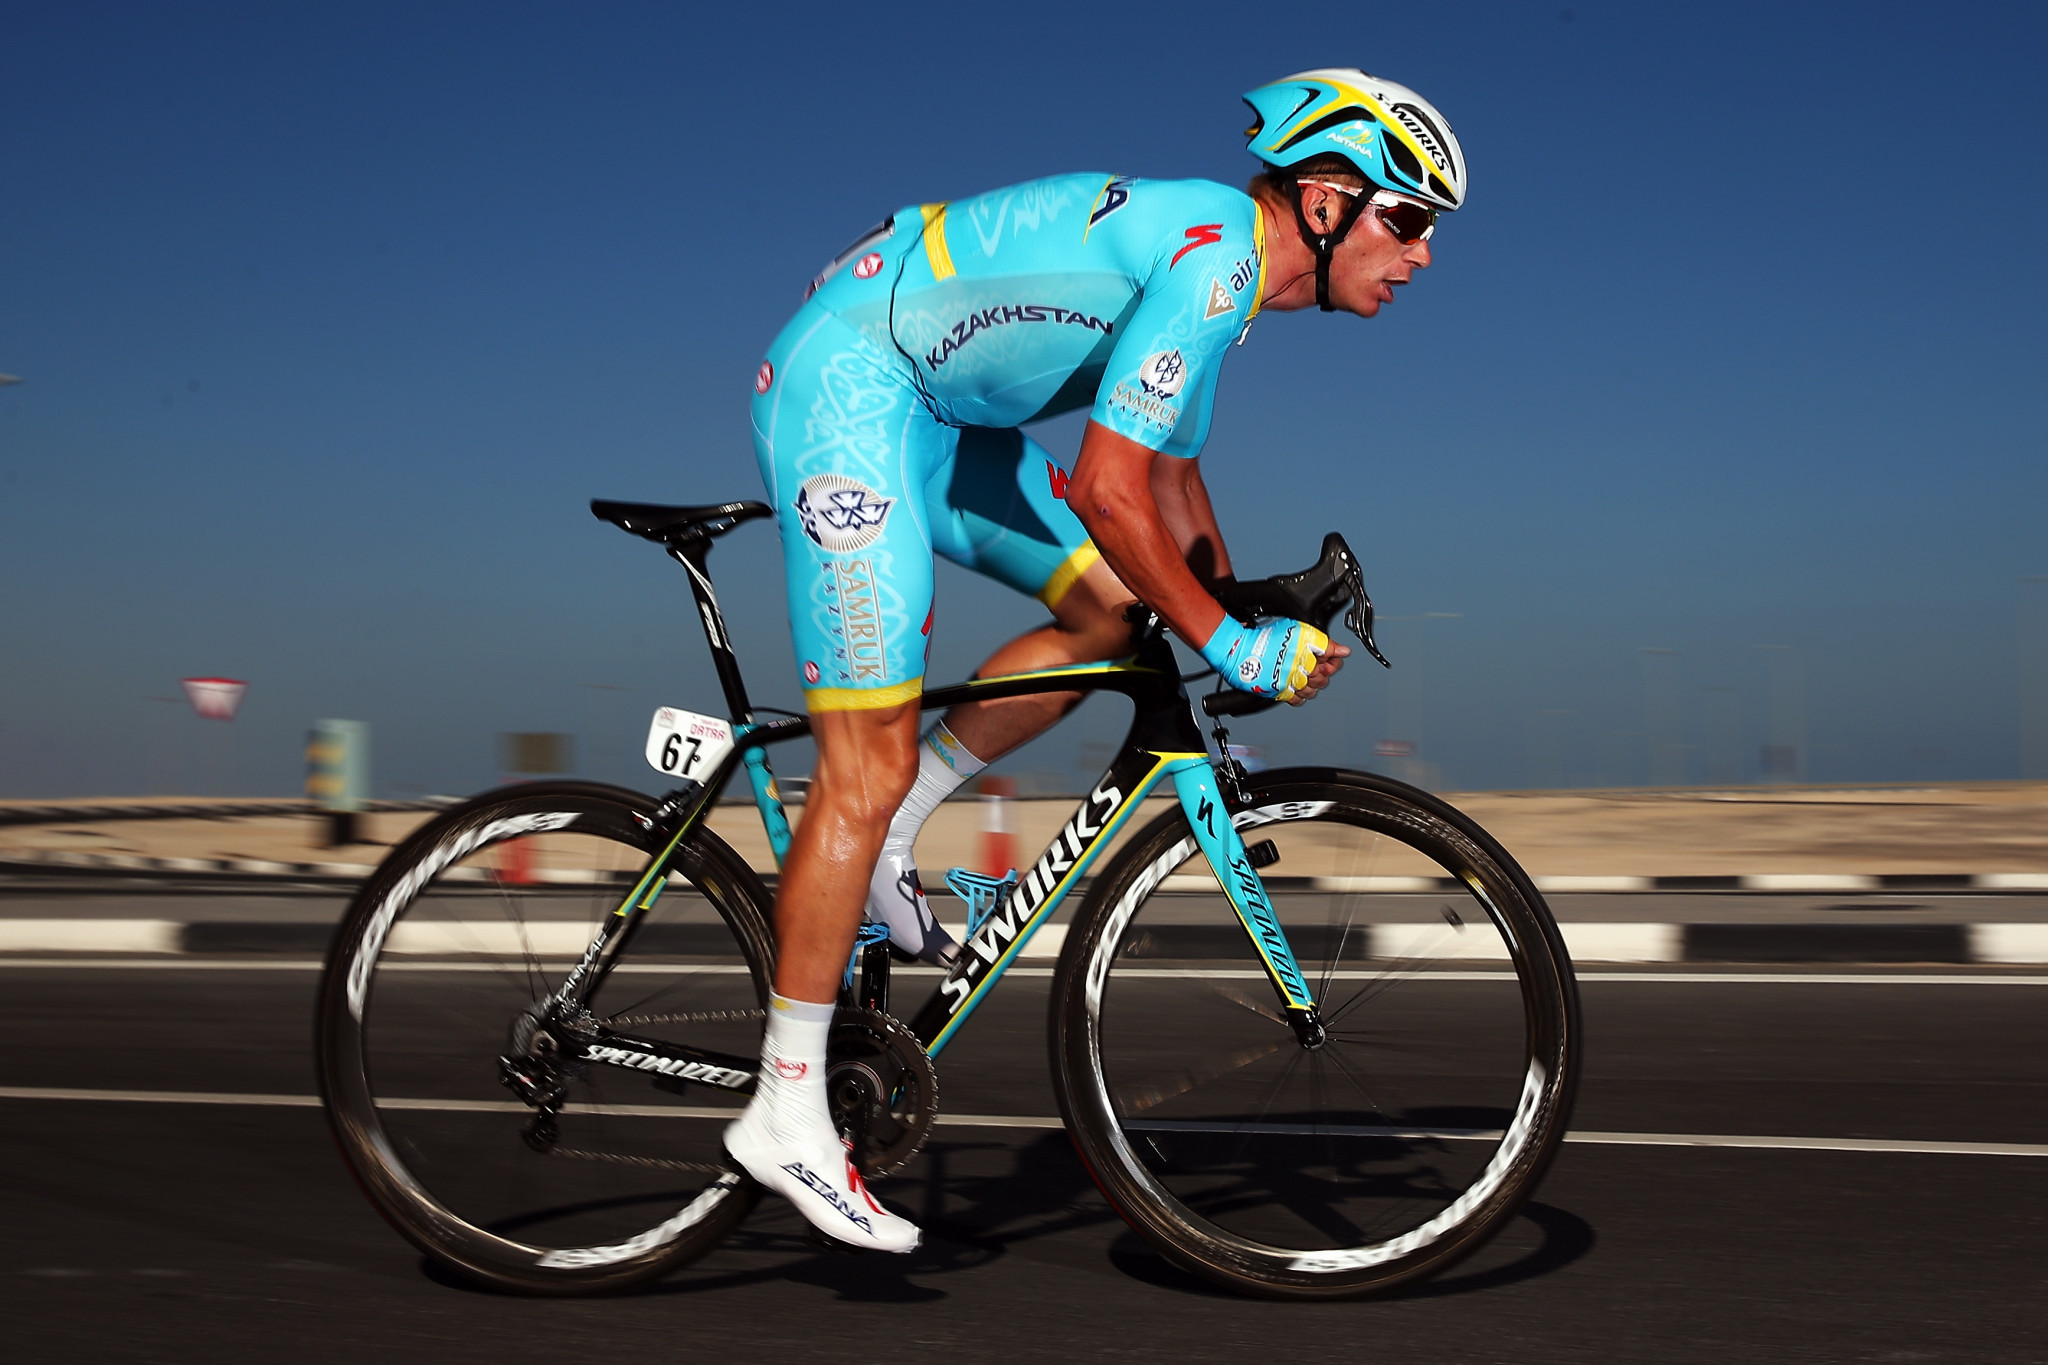 Astana have claimed they may pursue compensation from their former rider ©Getty Images